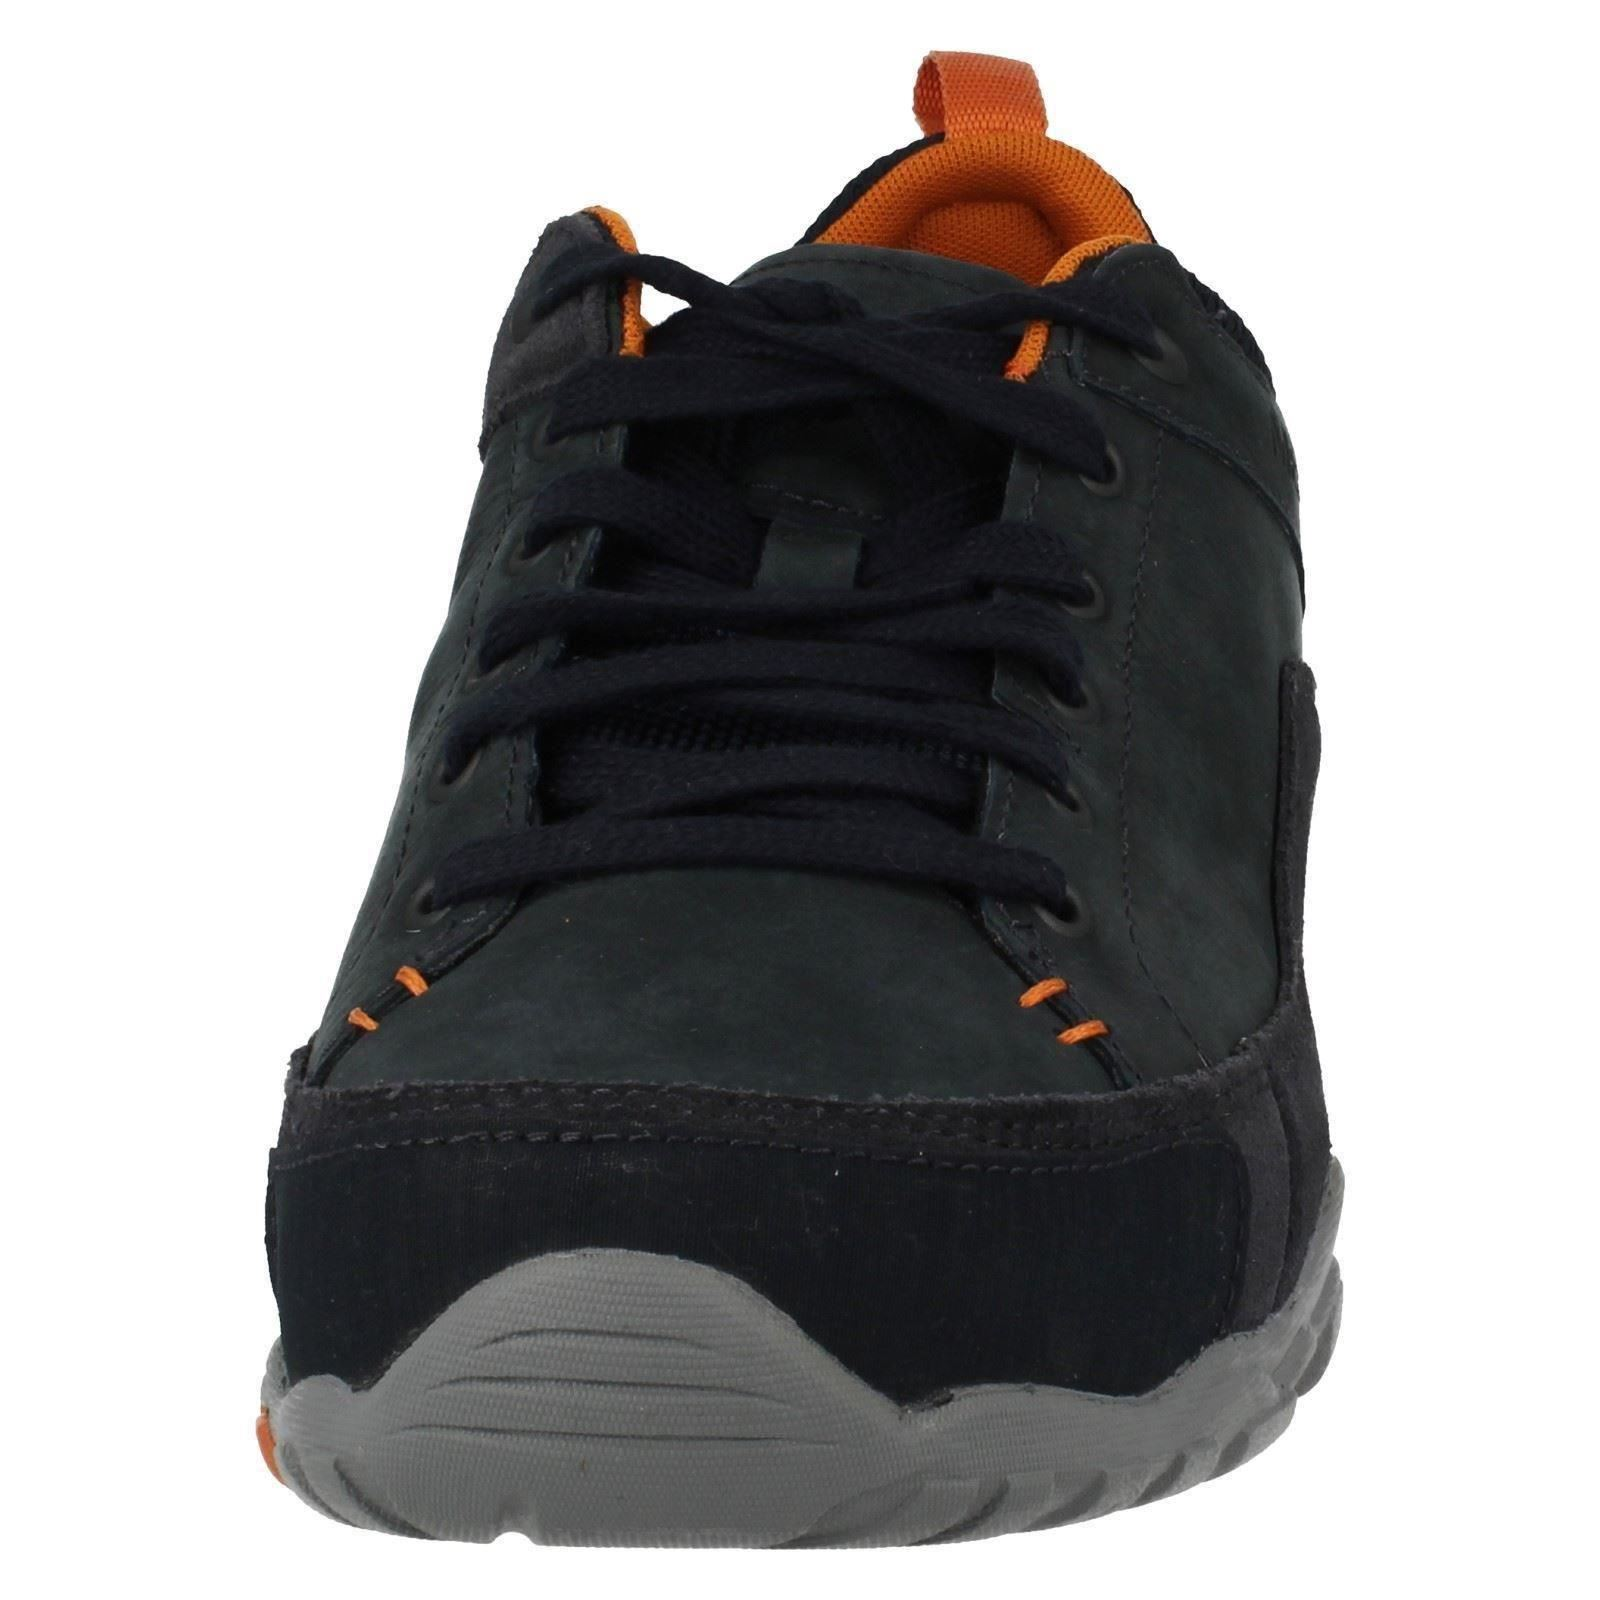 Uomo Merrell Rounded Toe Lace Schuhes Up Leder Casual Walking Schuhes Lace Telluride Lace f1bf06